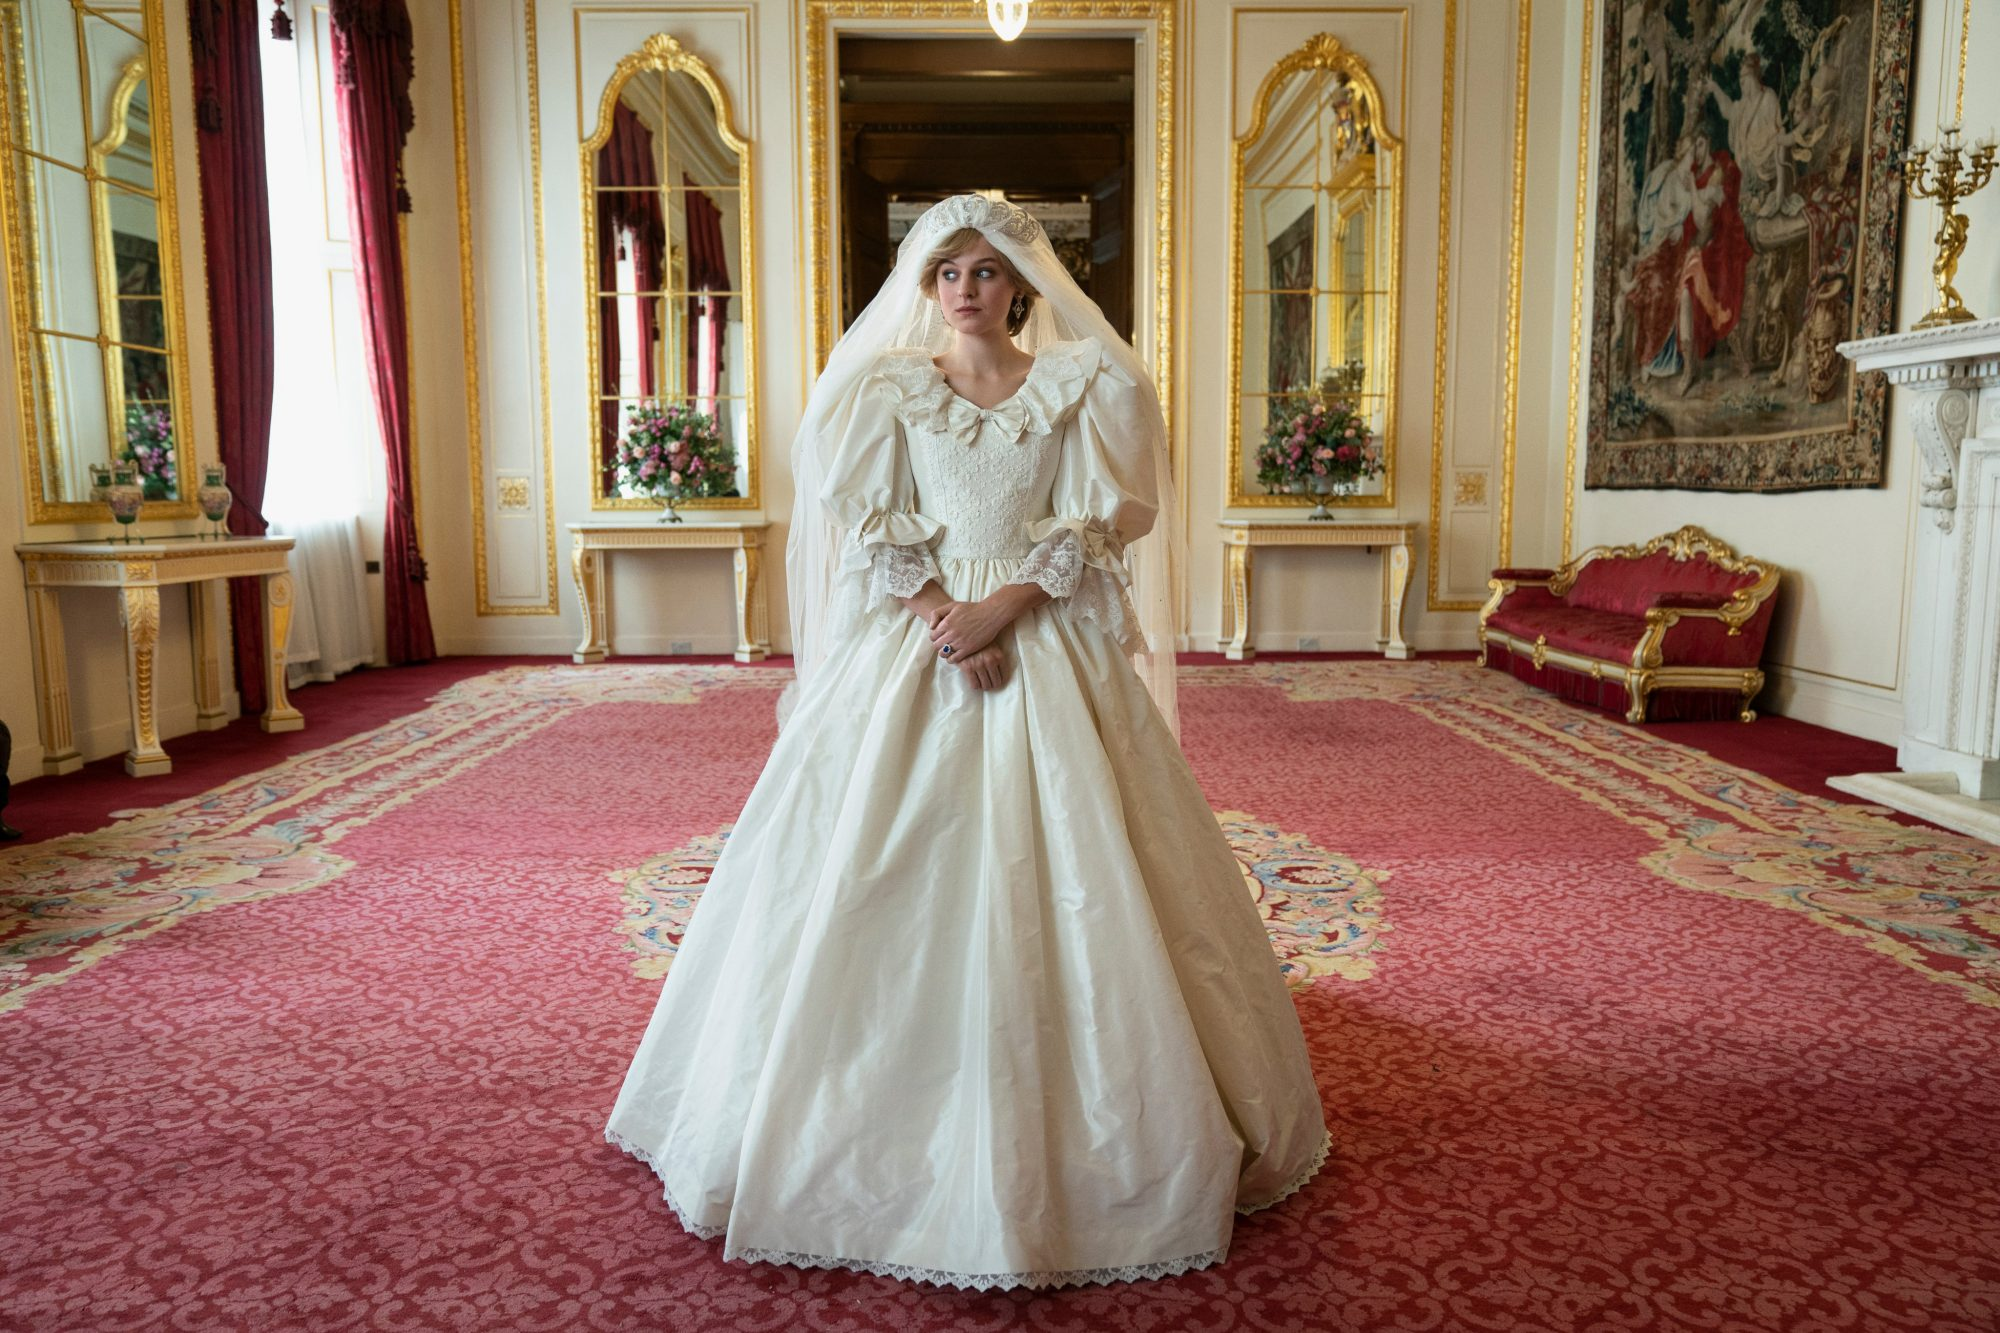 Emma Corrin as Princess Diana on her wedding day, 'The Crown'